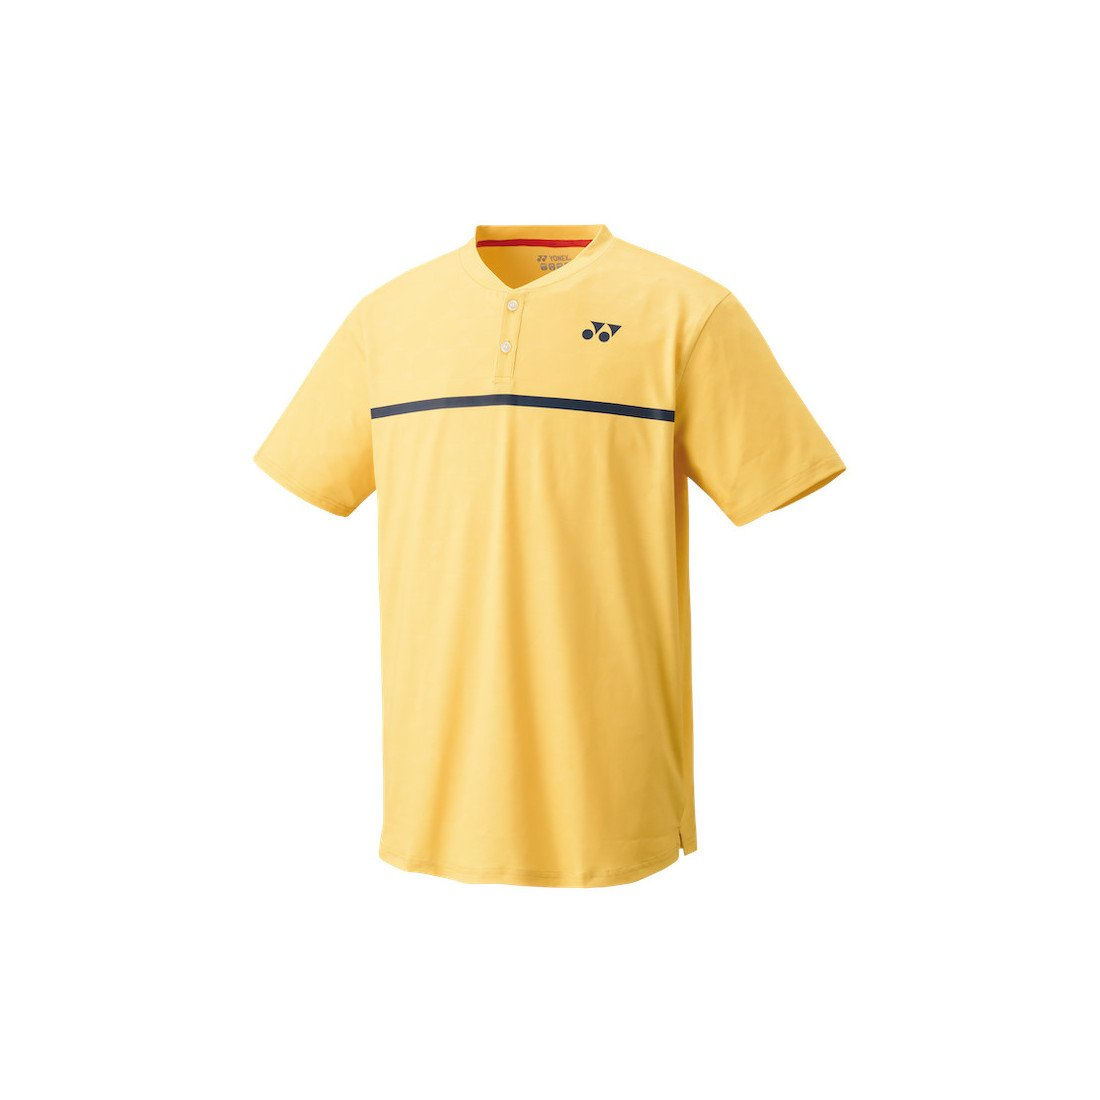 Yonex Men's Henley Tennis Shirt (Slim Fit) [soft yellow]